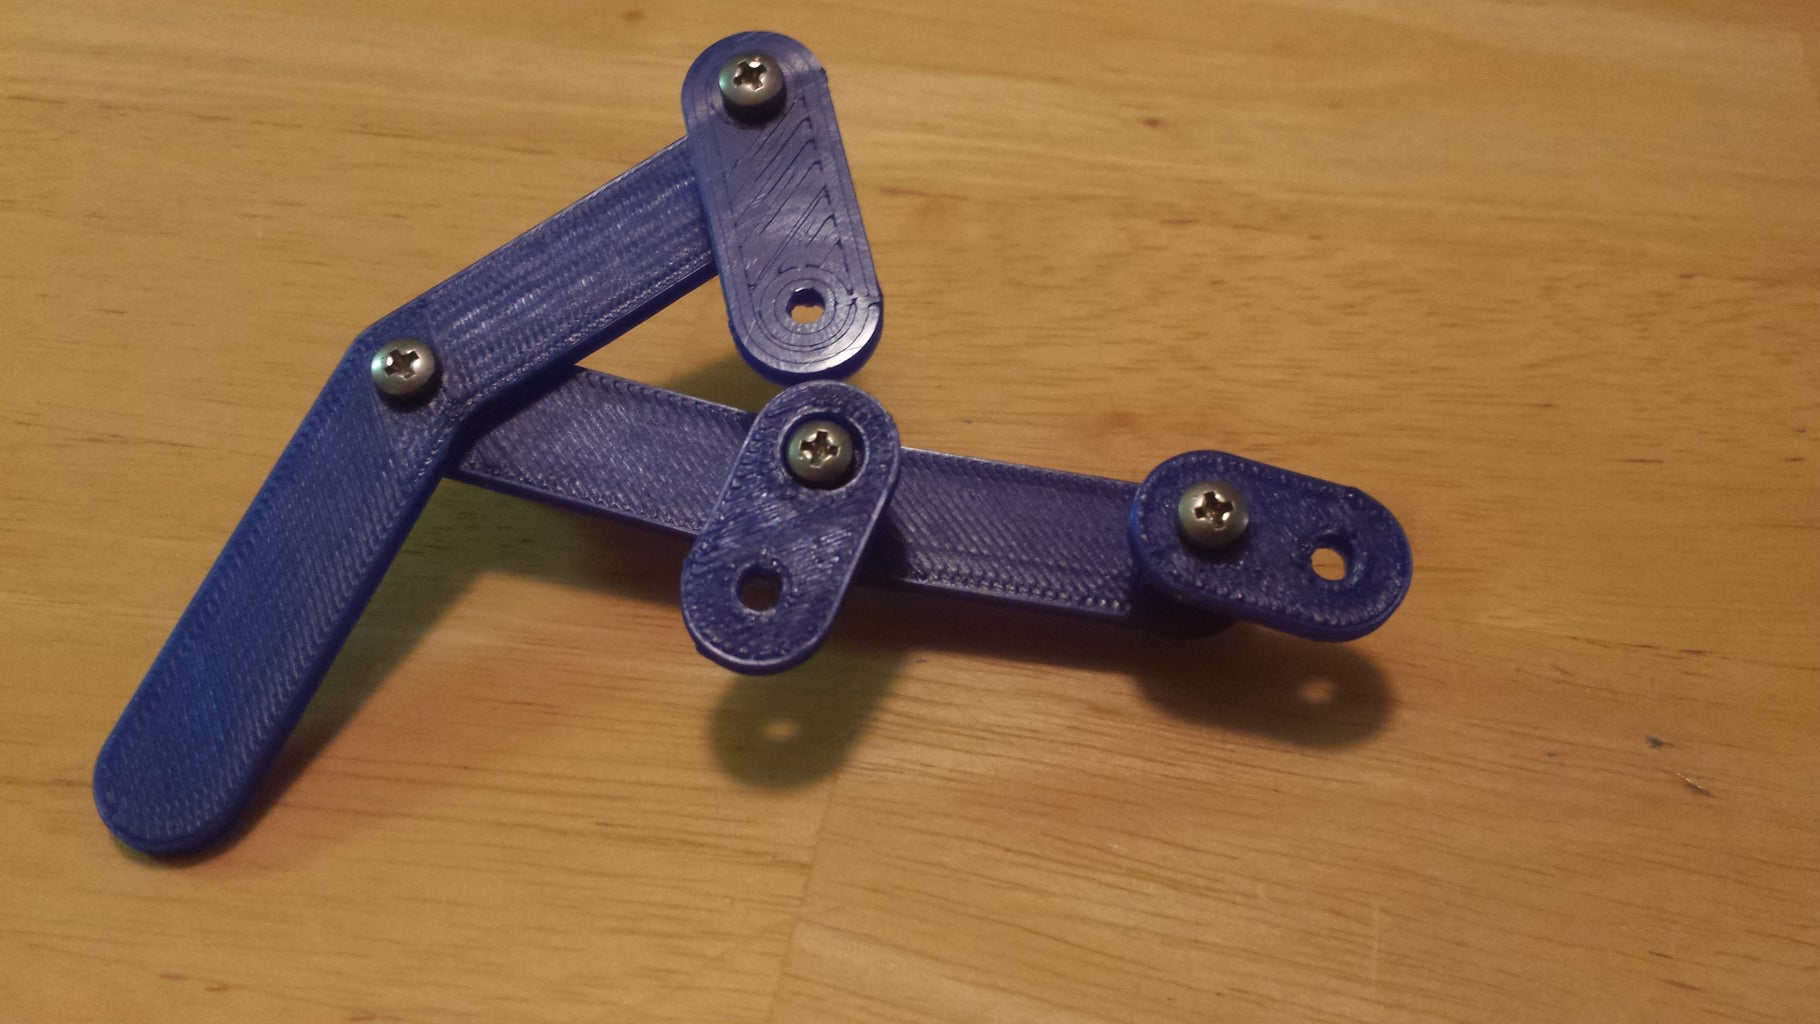 Linkage Assembly: Attach Gear and Crank